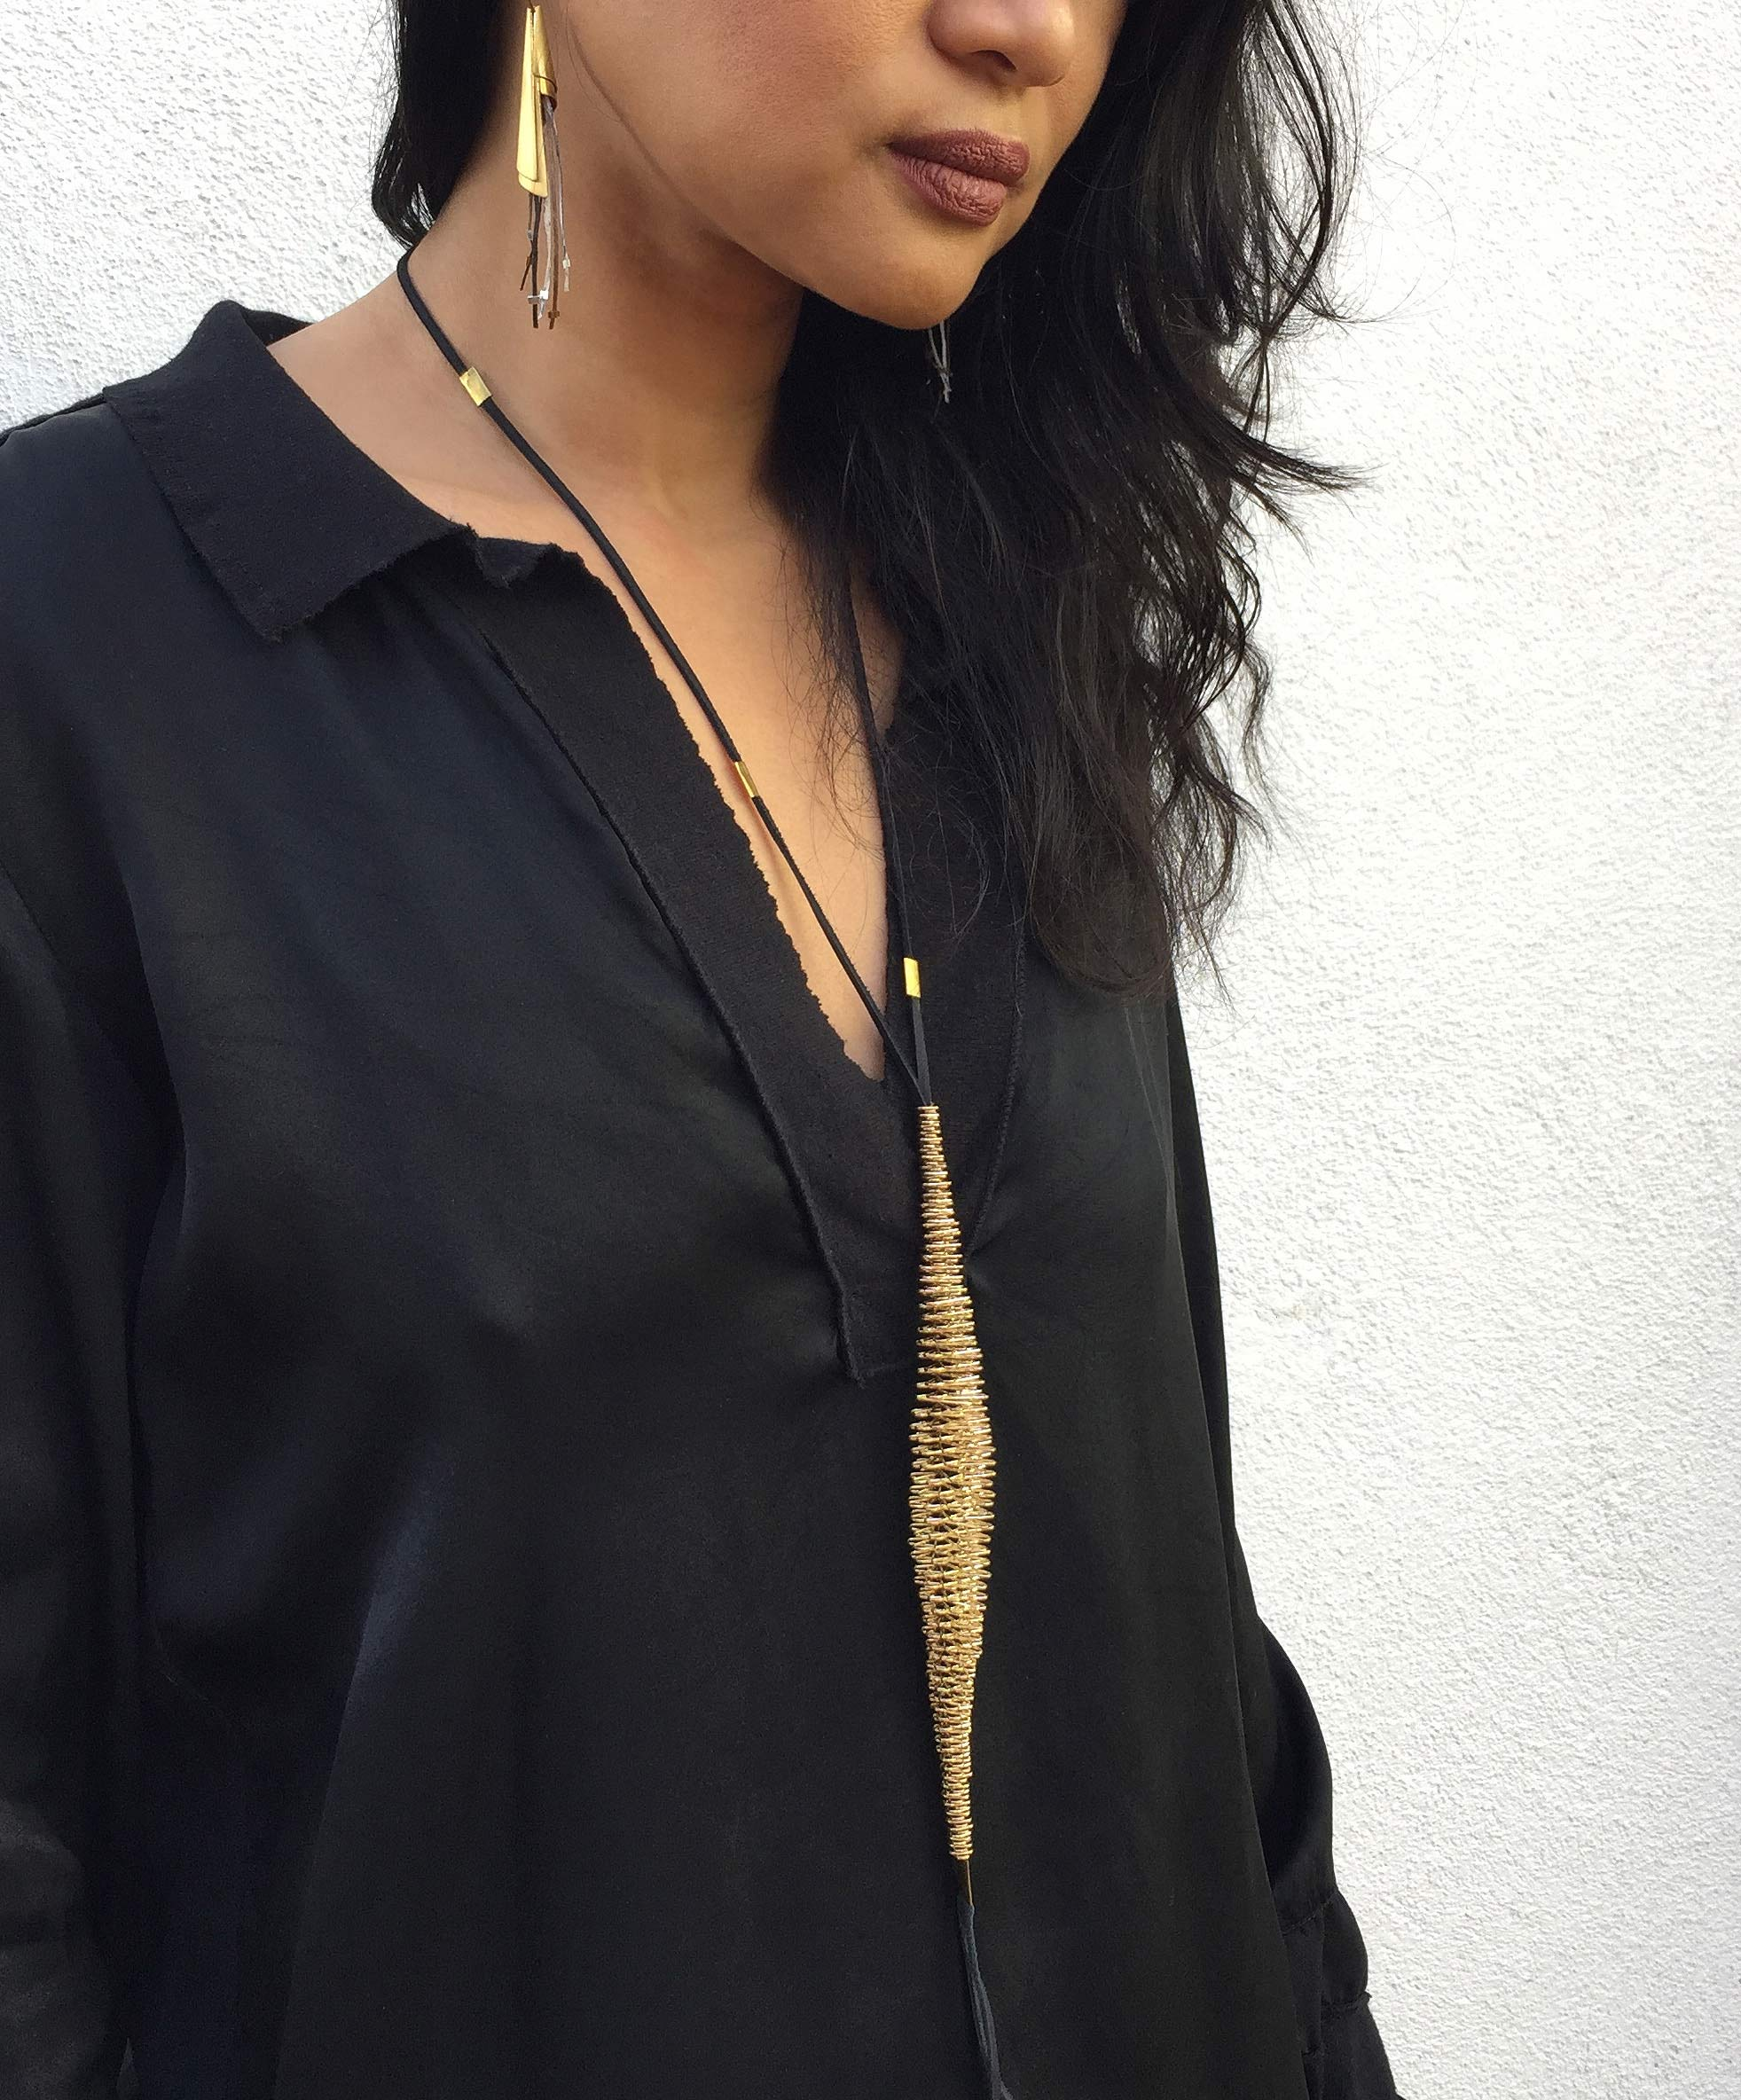 The handmade and one of a kind millepiede necklace and medusa earrings look great on Andrea